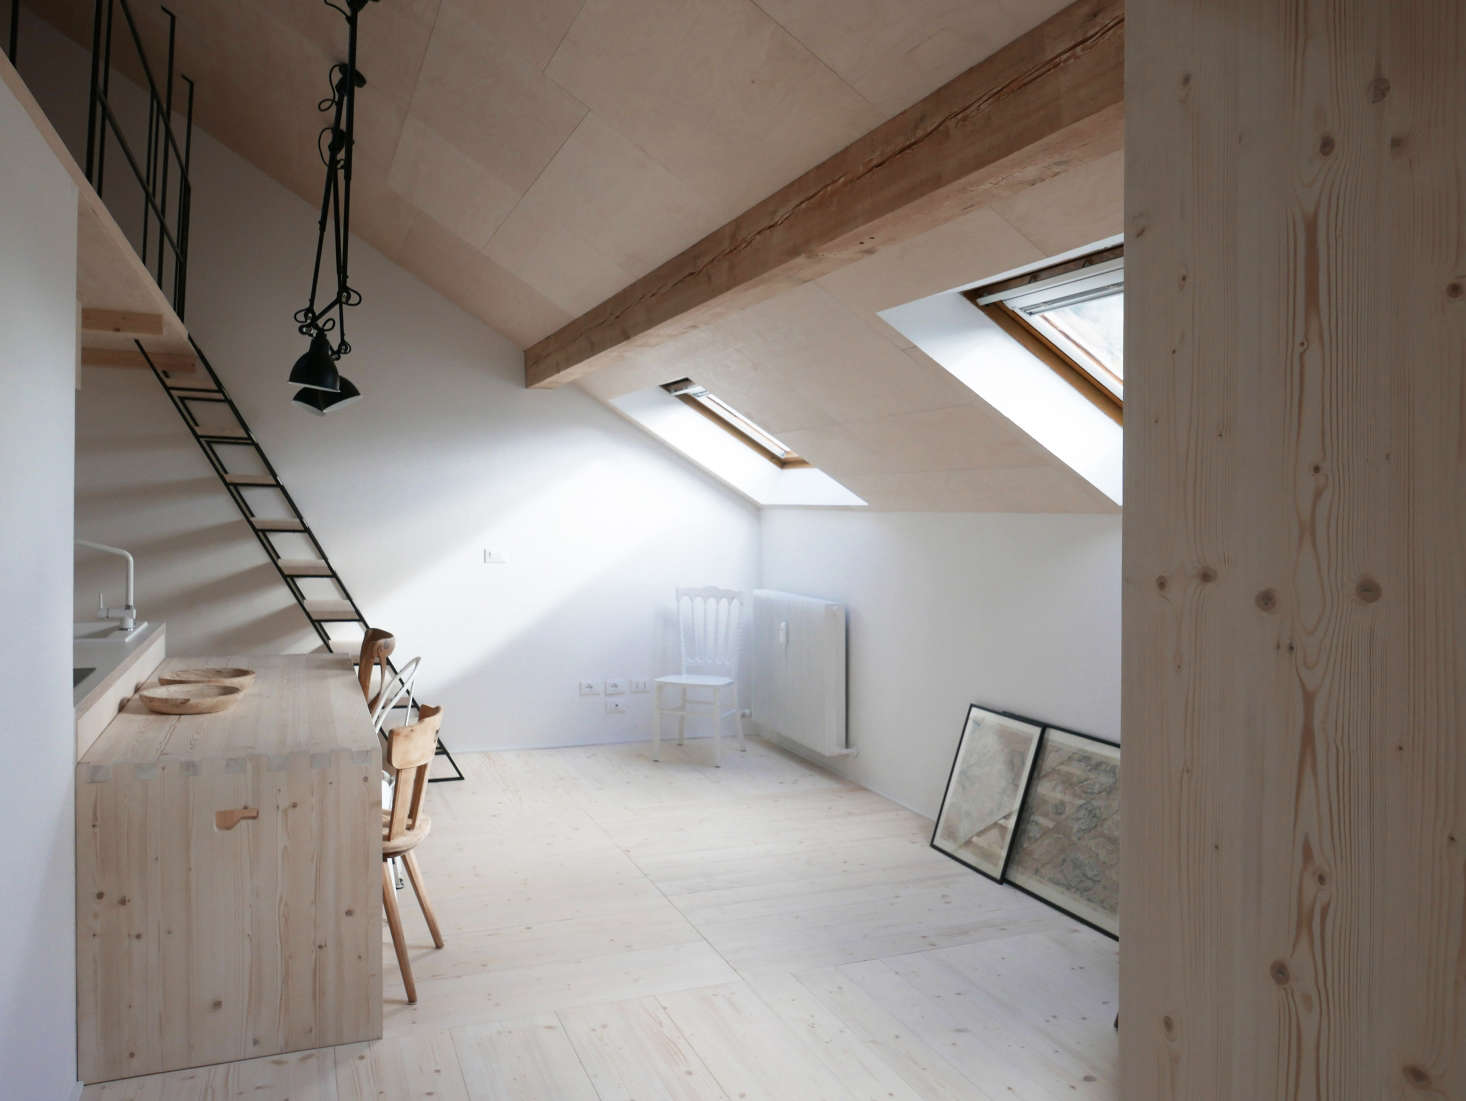 InA Light-Filled Chalet in the Italian Alps, Updated for a Young Skier, plywood adds detail to the steeply pitched ceiling.